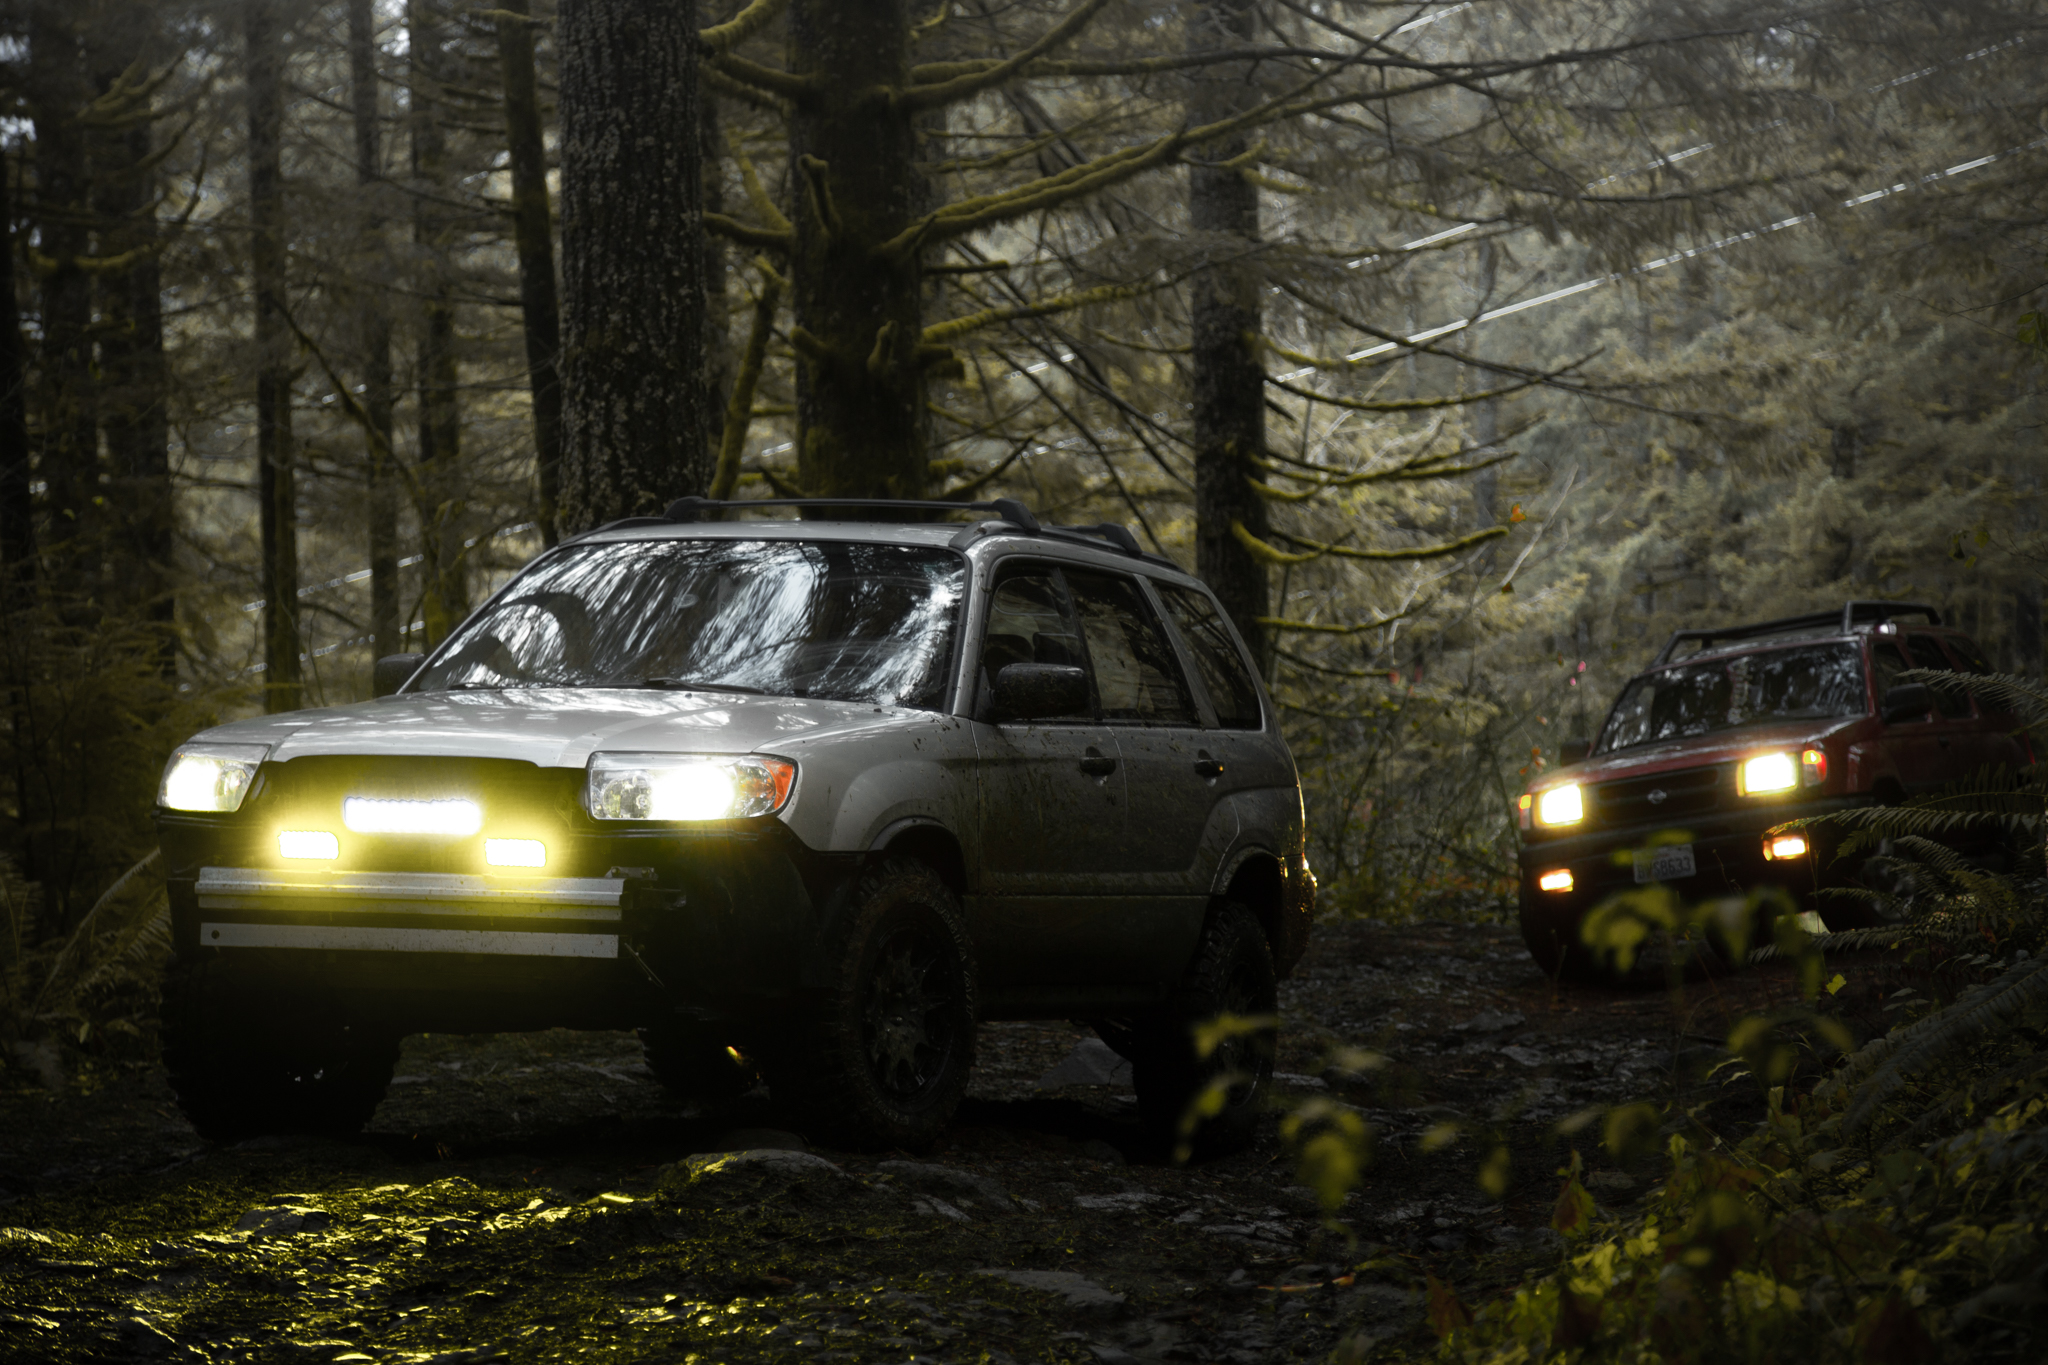 lifted subaru forester with all terrain tires and lift kit 2006 in the woods with lights